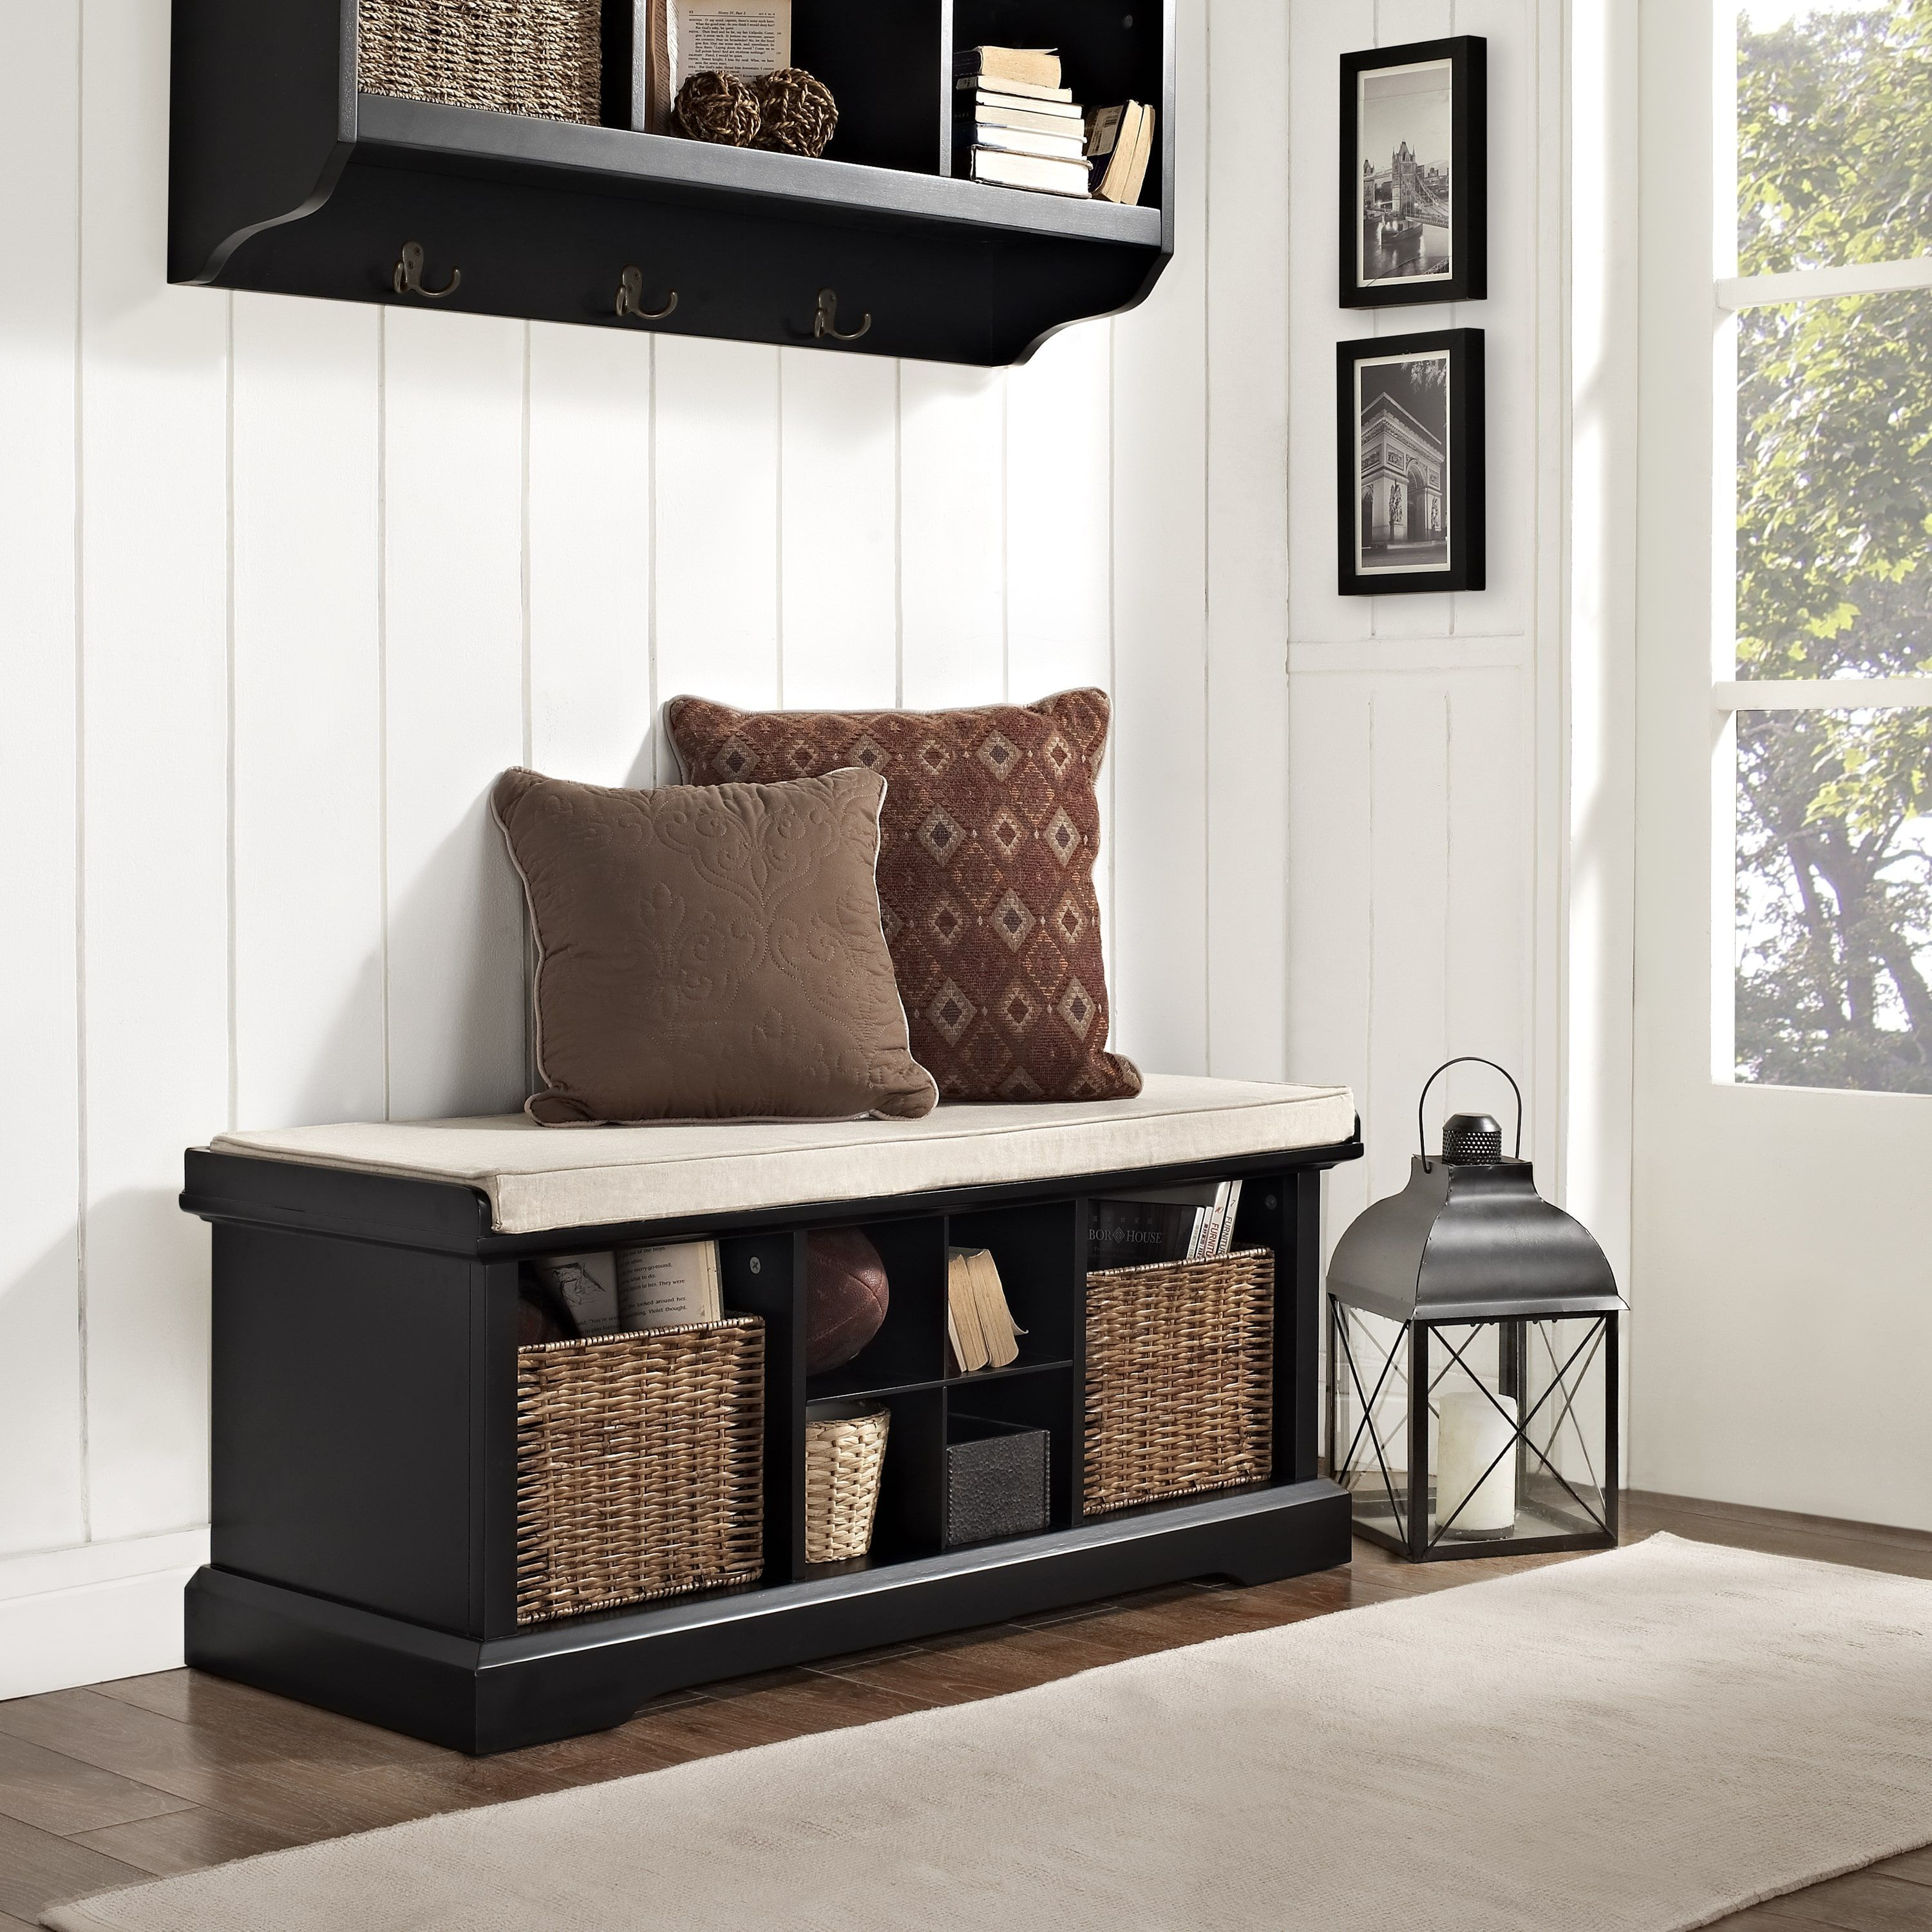 Tremendous Brennan Entryway Storage Bench In Black Apartment Helps Ncnpc Chair Design For Home Ncnpcorg